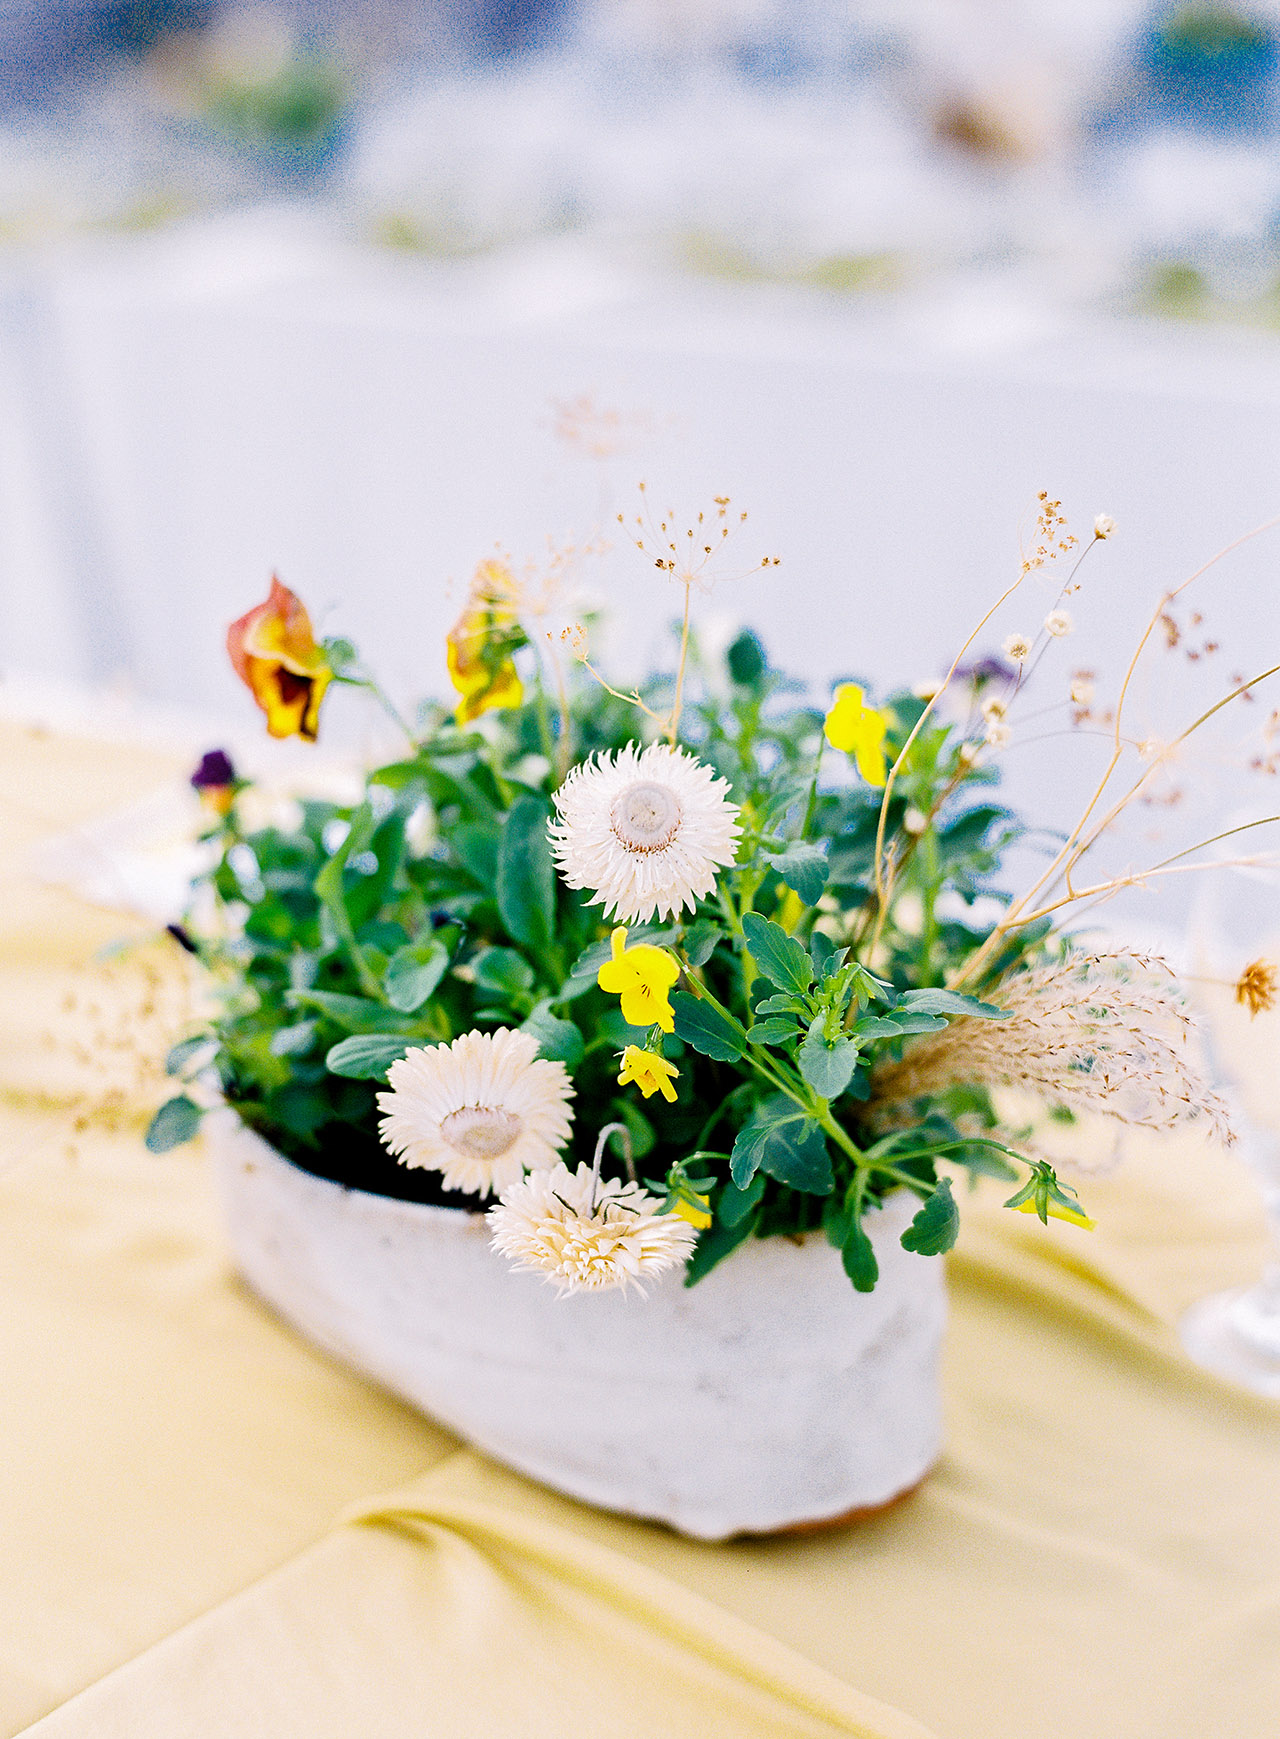 The Planted Centerpieces